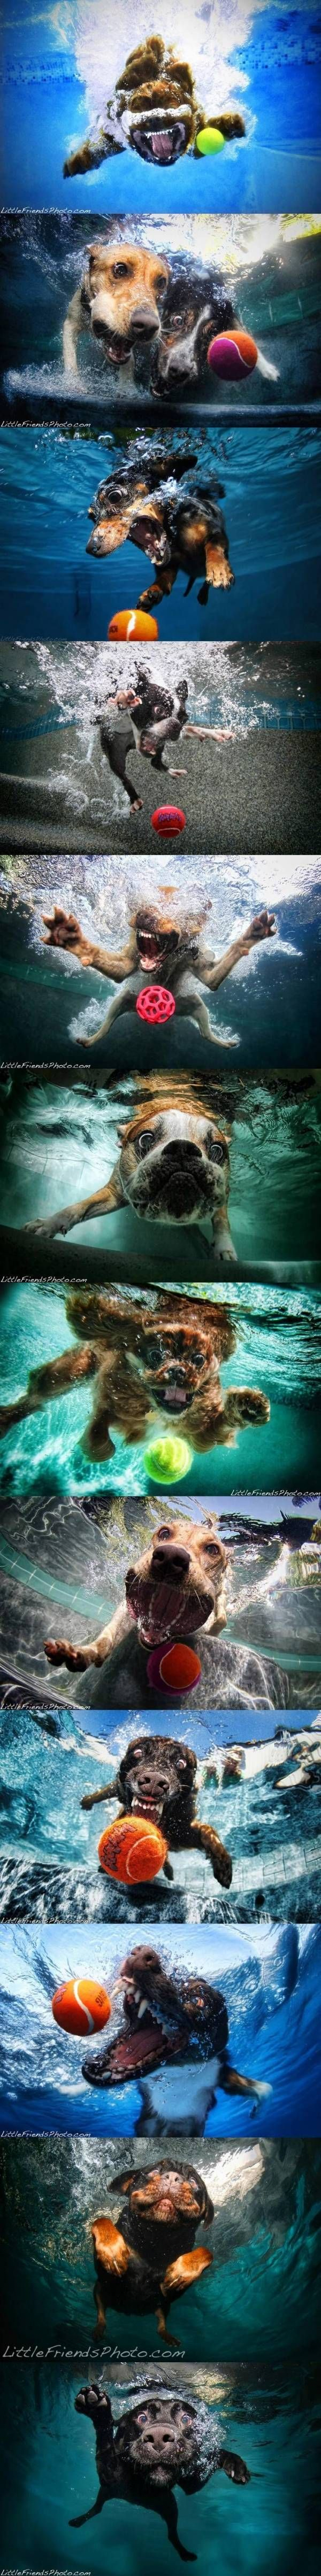 Dogs diving for tennis balls. LOVE!